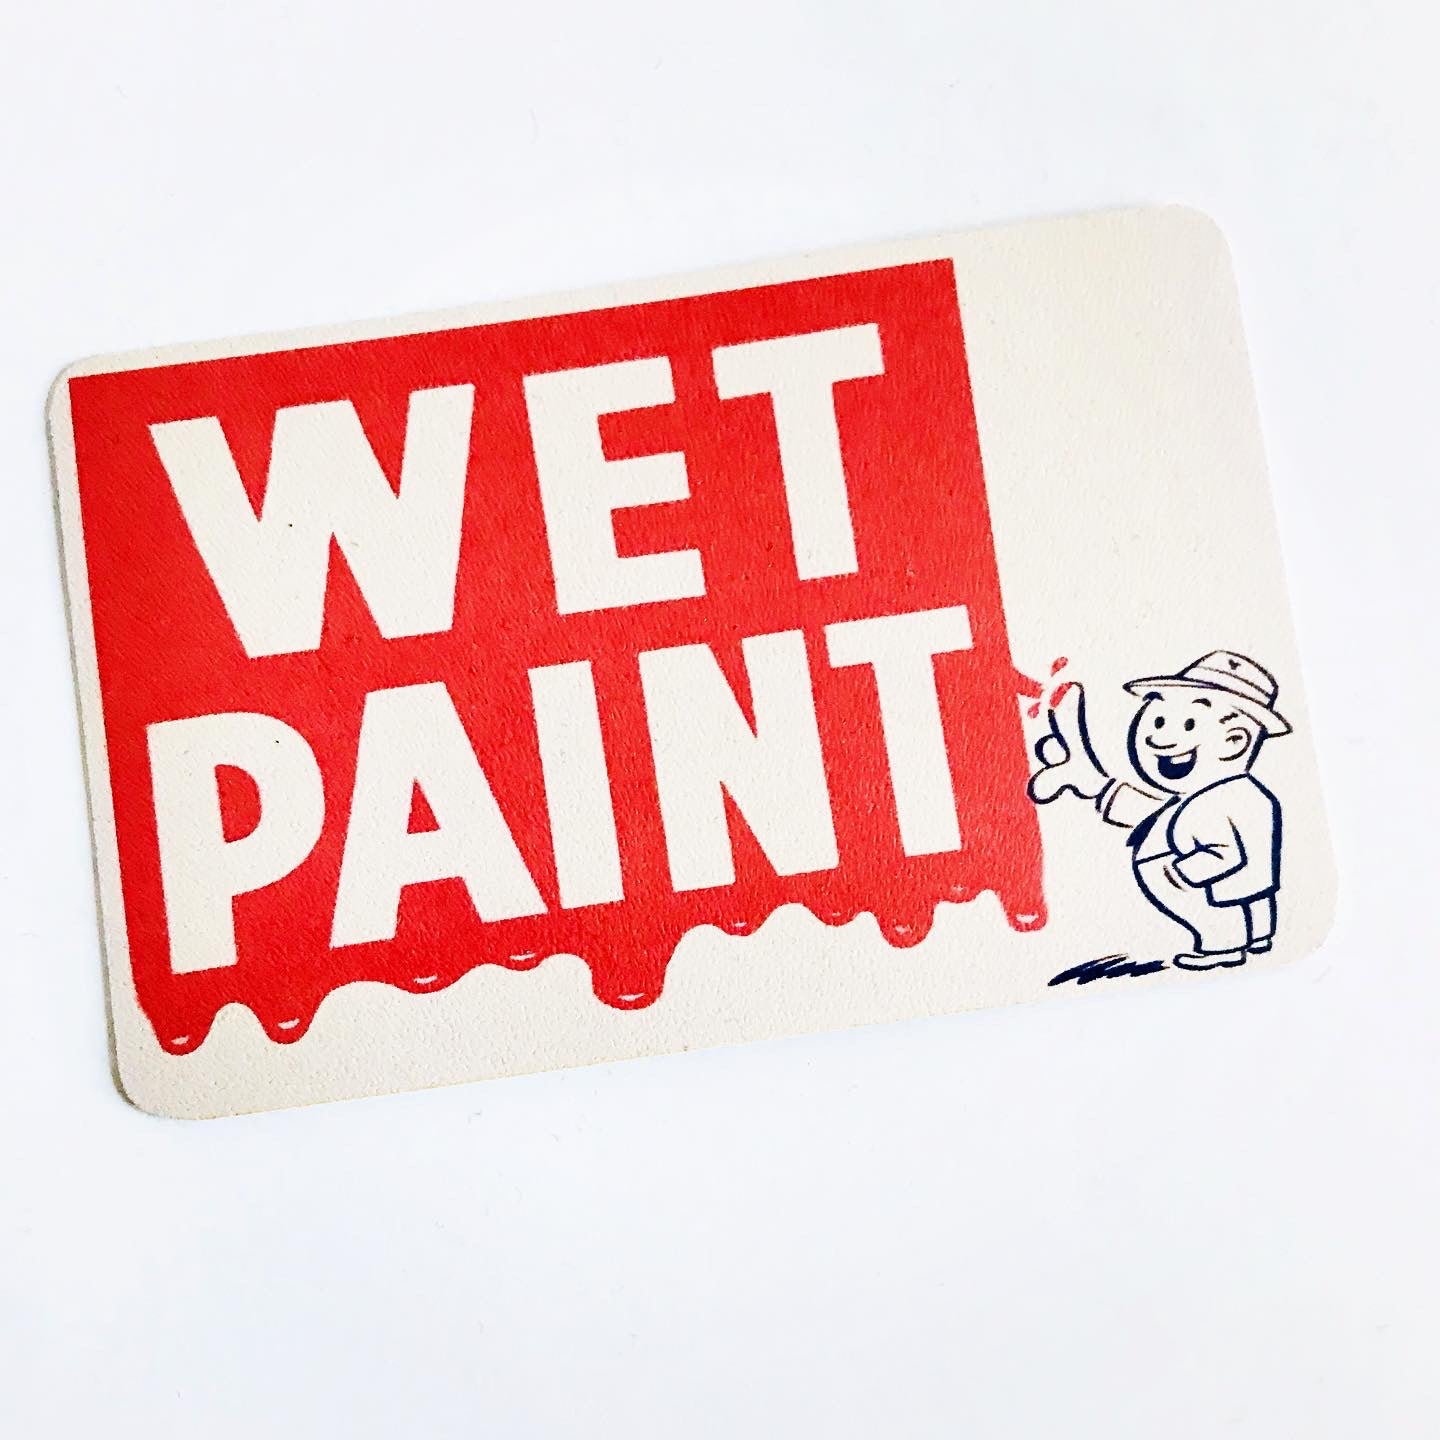 Image of Wet Paint Blanks